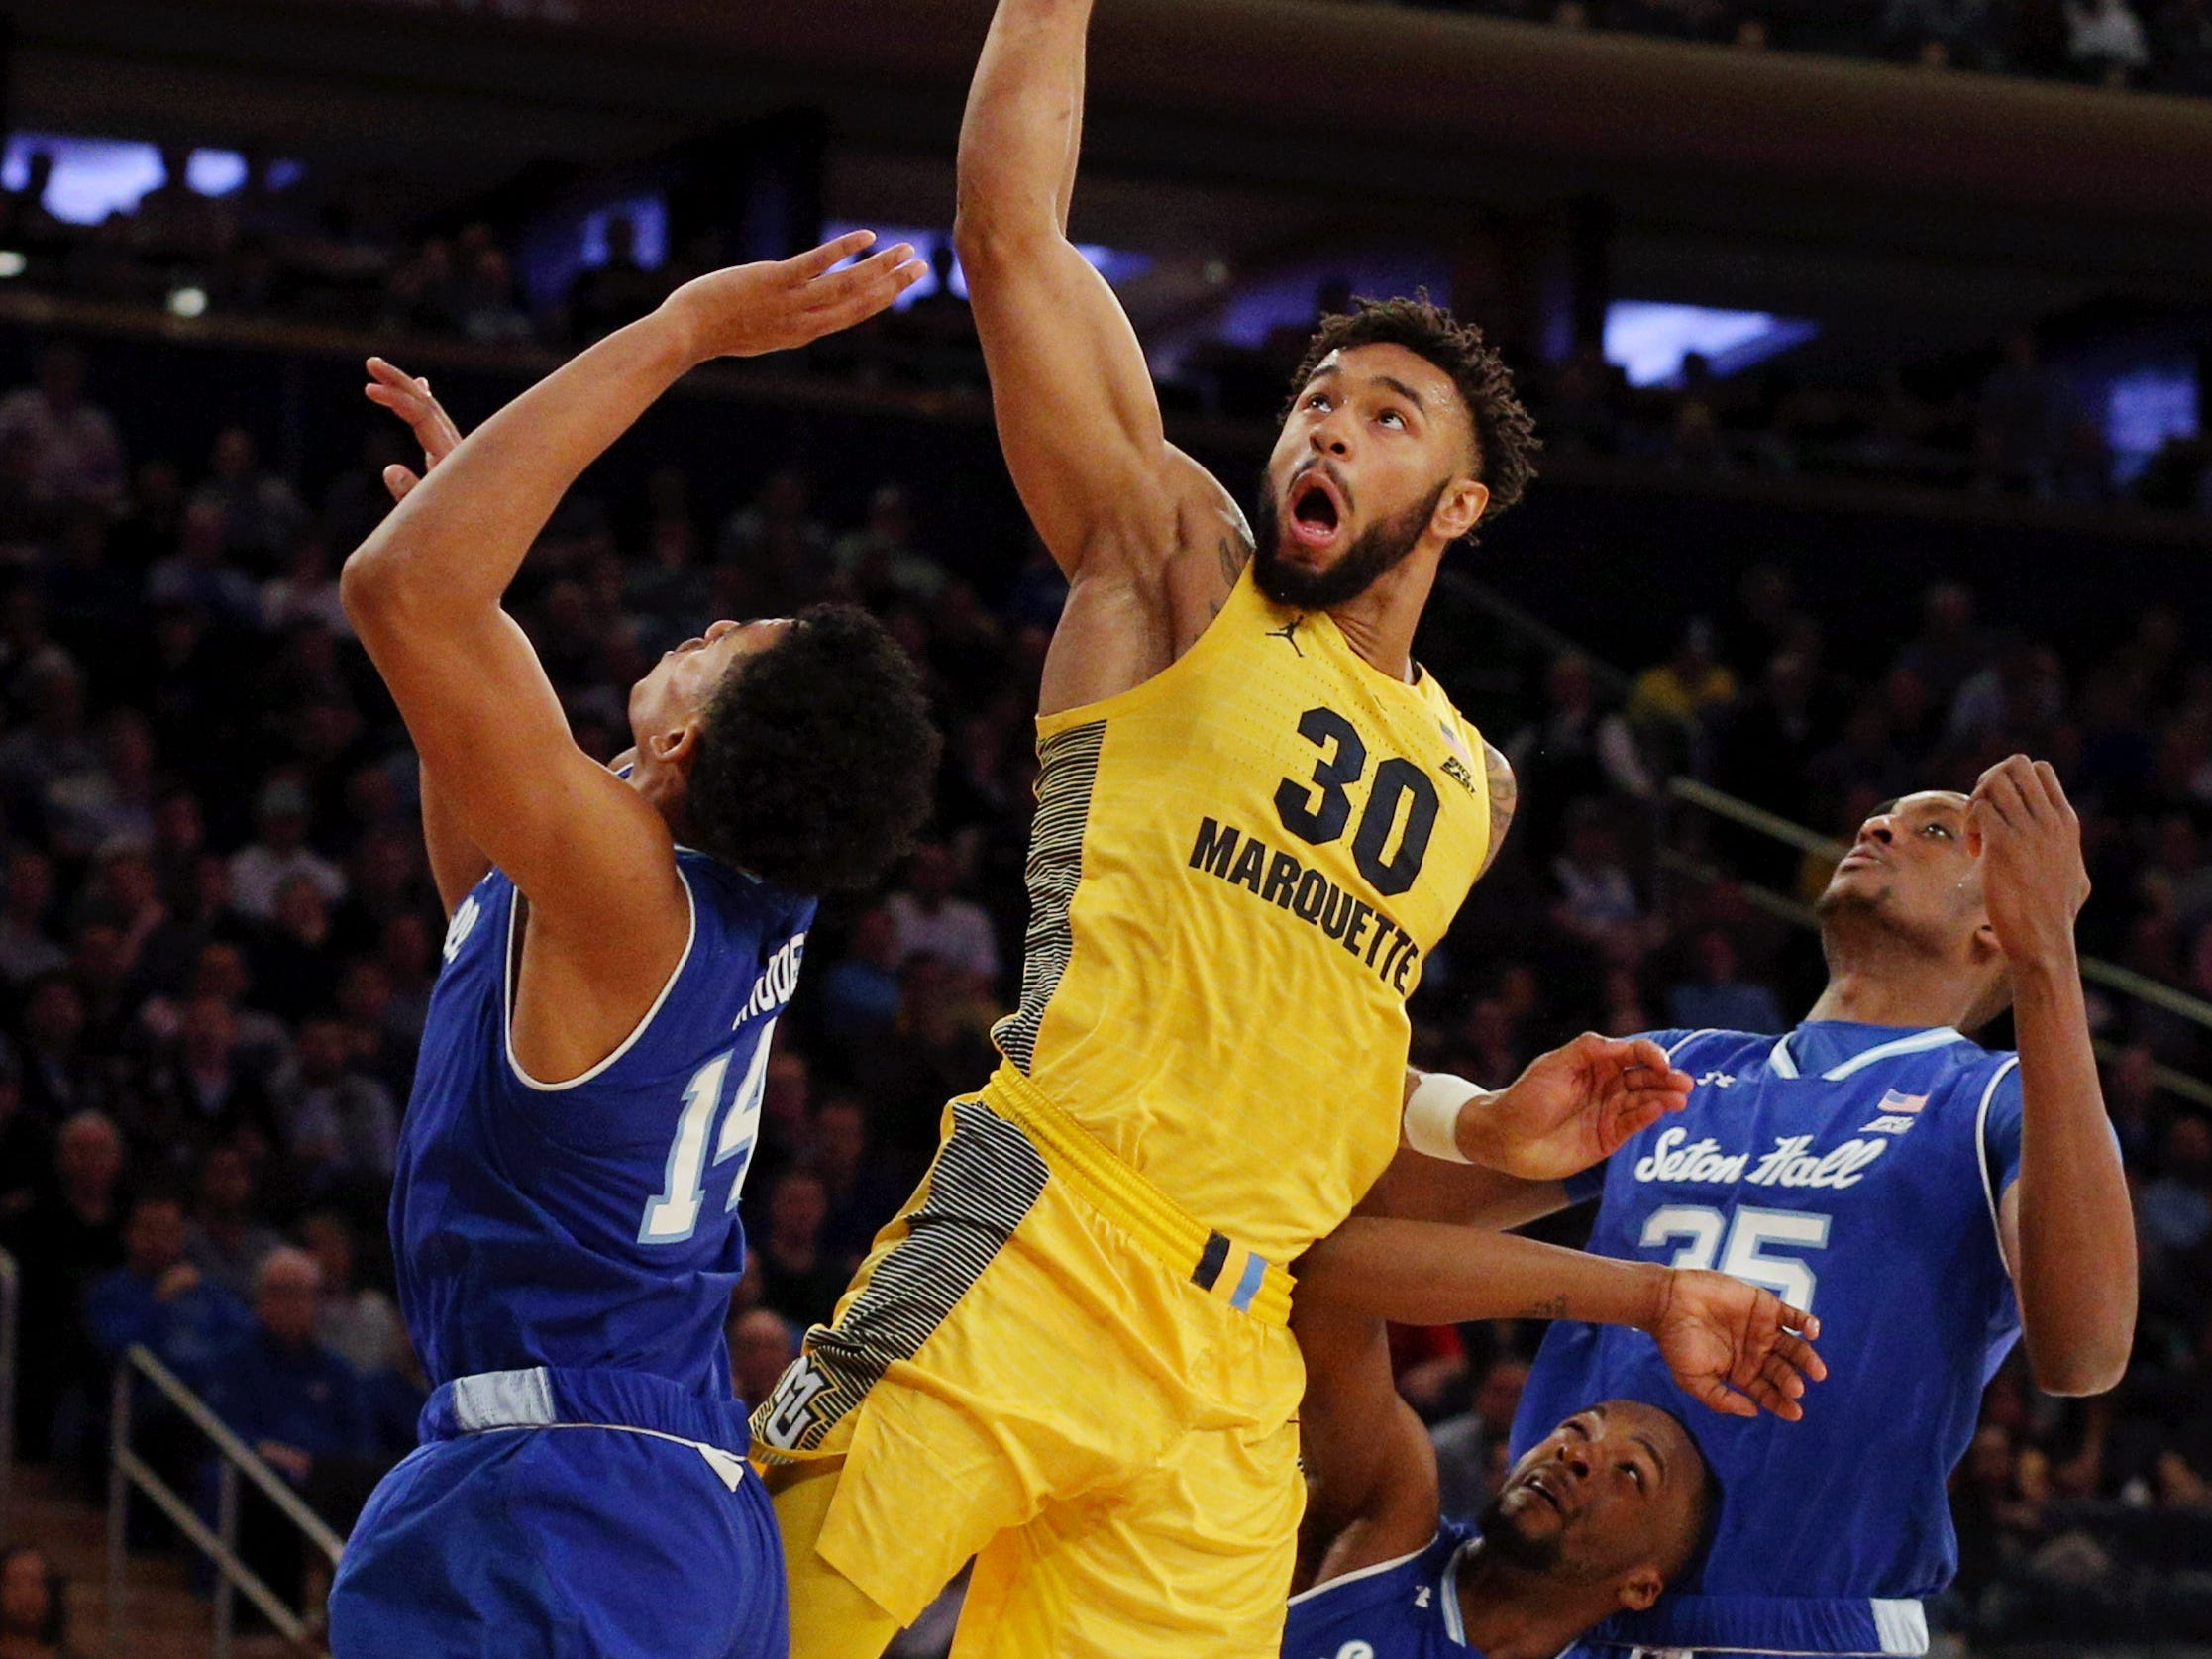 March 15: Marquette Golden Eagles forward Ed Morrow (30) dunks an offensive rebound against Seton Hall during the first half of a Big East tournament game.